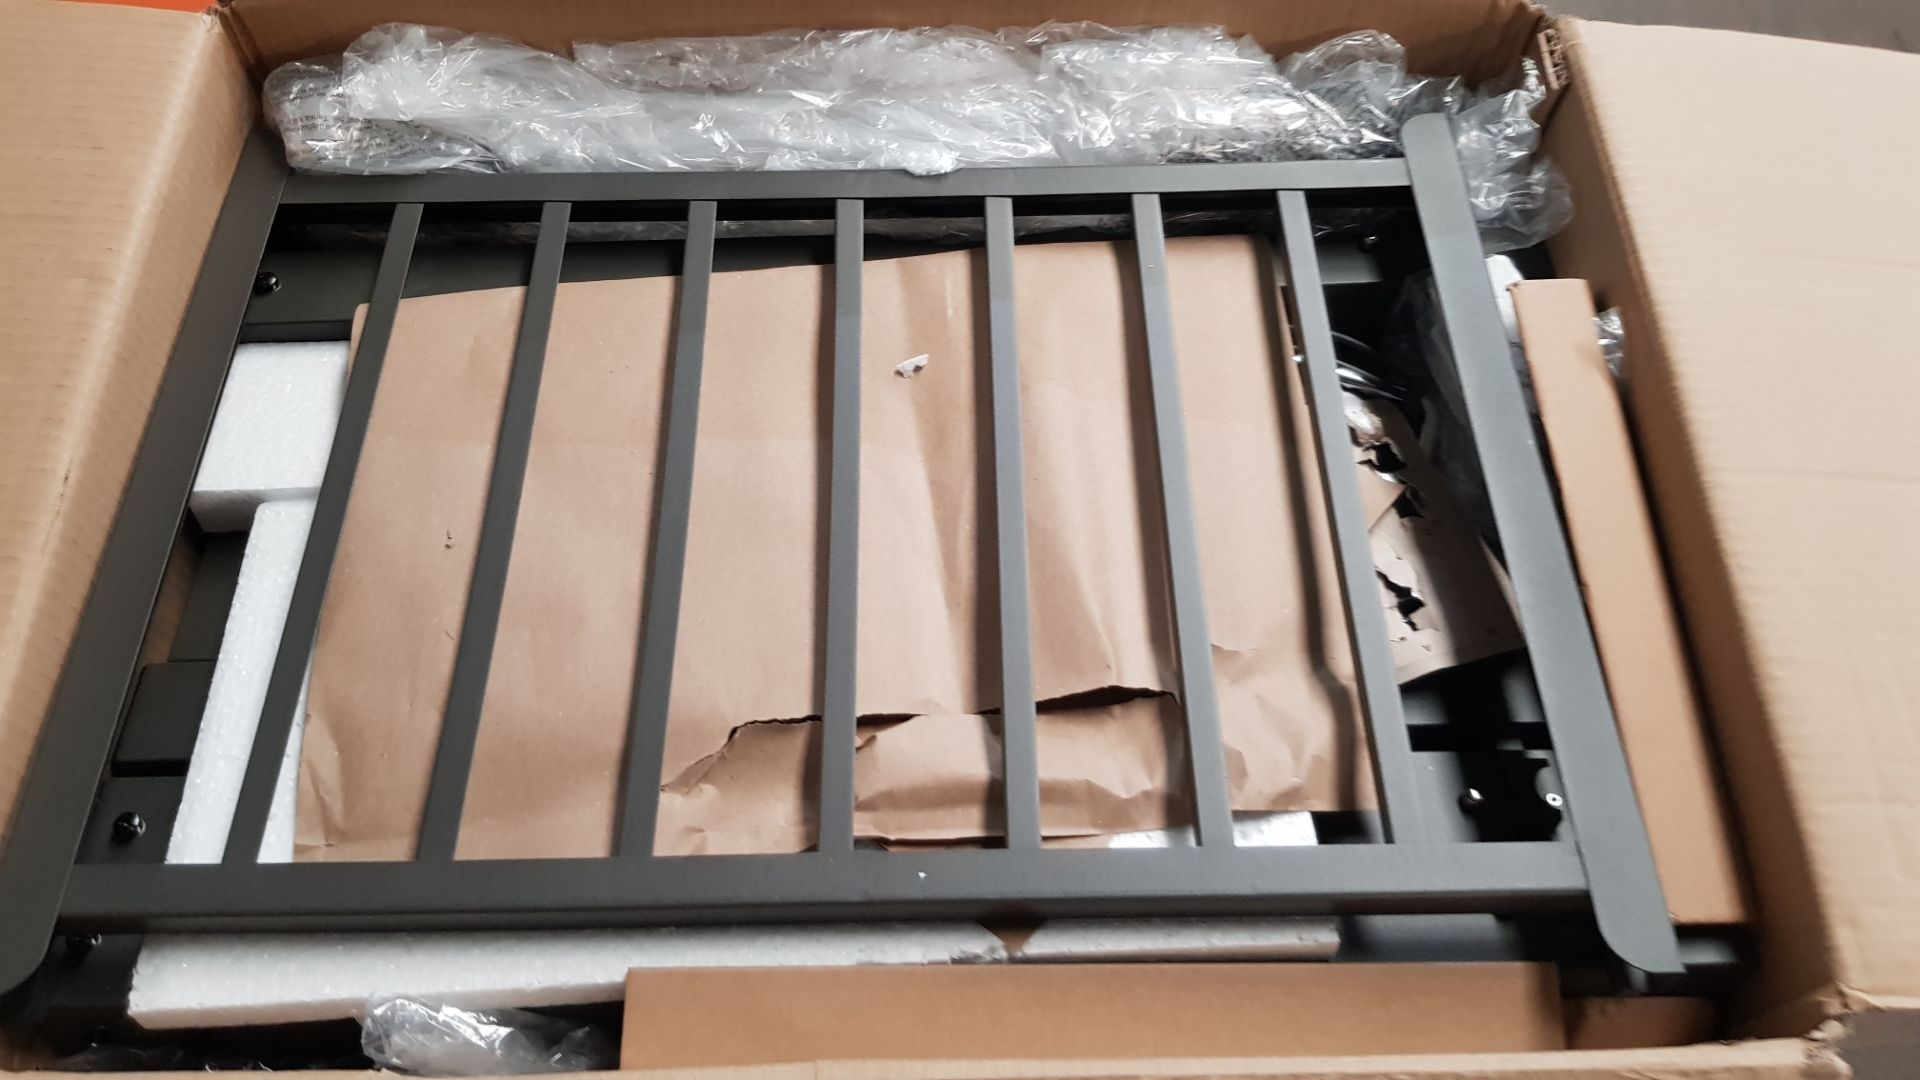 (P3) 1x Texas Franklin Charcoal BBQ. RRP £180.00. Unit Appears Clean, Unused – But Fixings Pack Has - Image 5 of 6